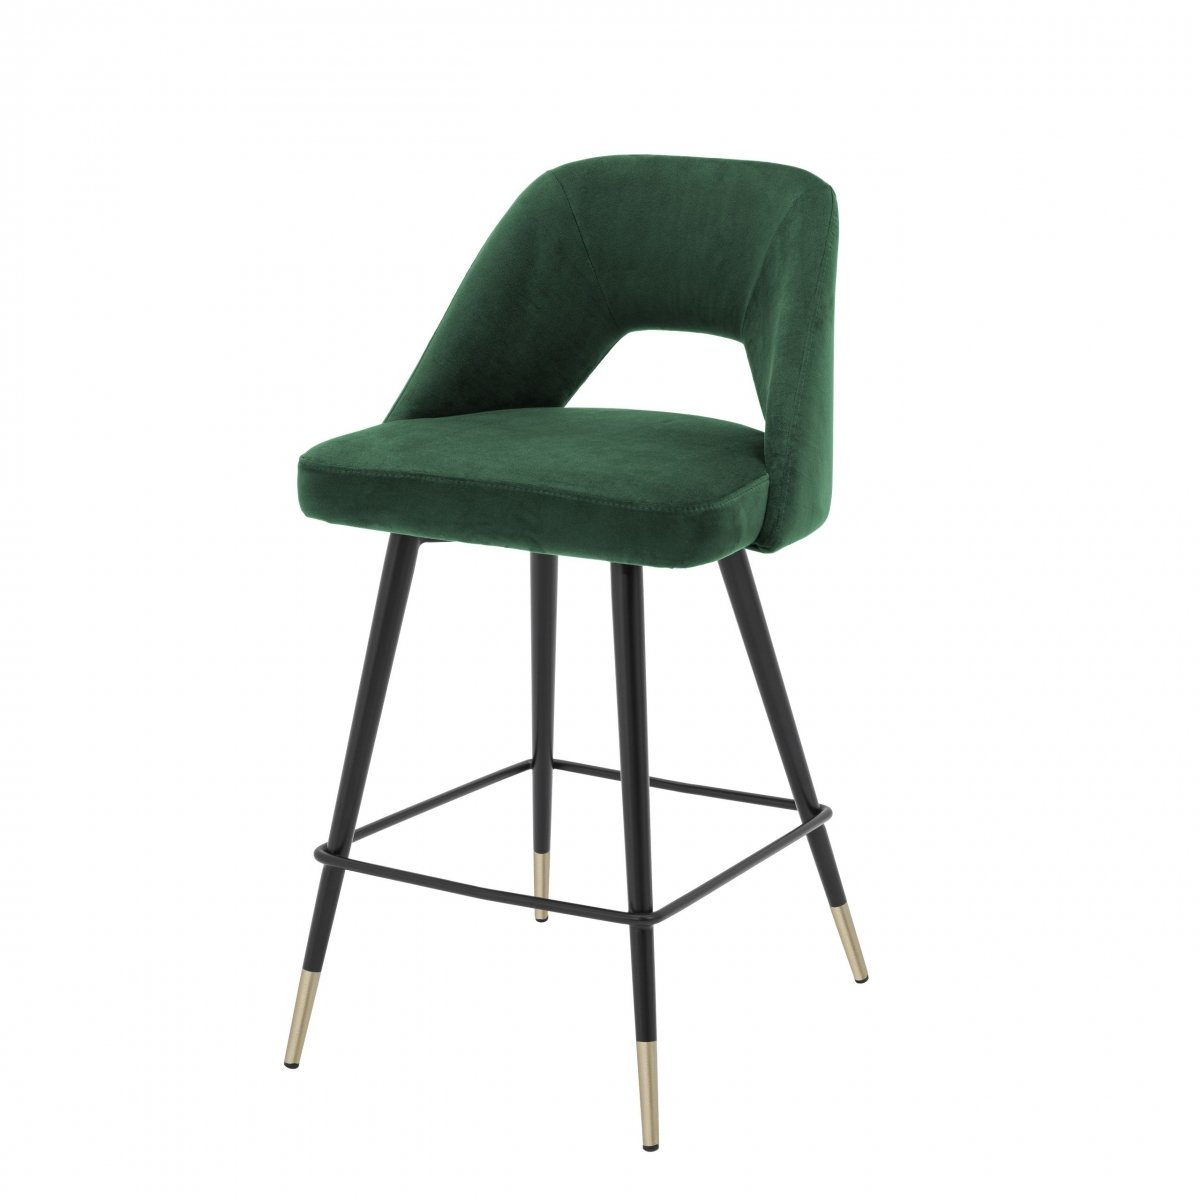 Полубарный стул Eichholtz Counter Bar Stool Avorio Green